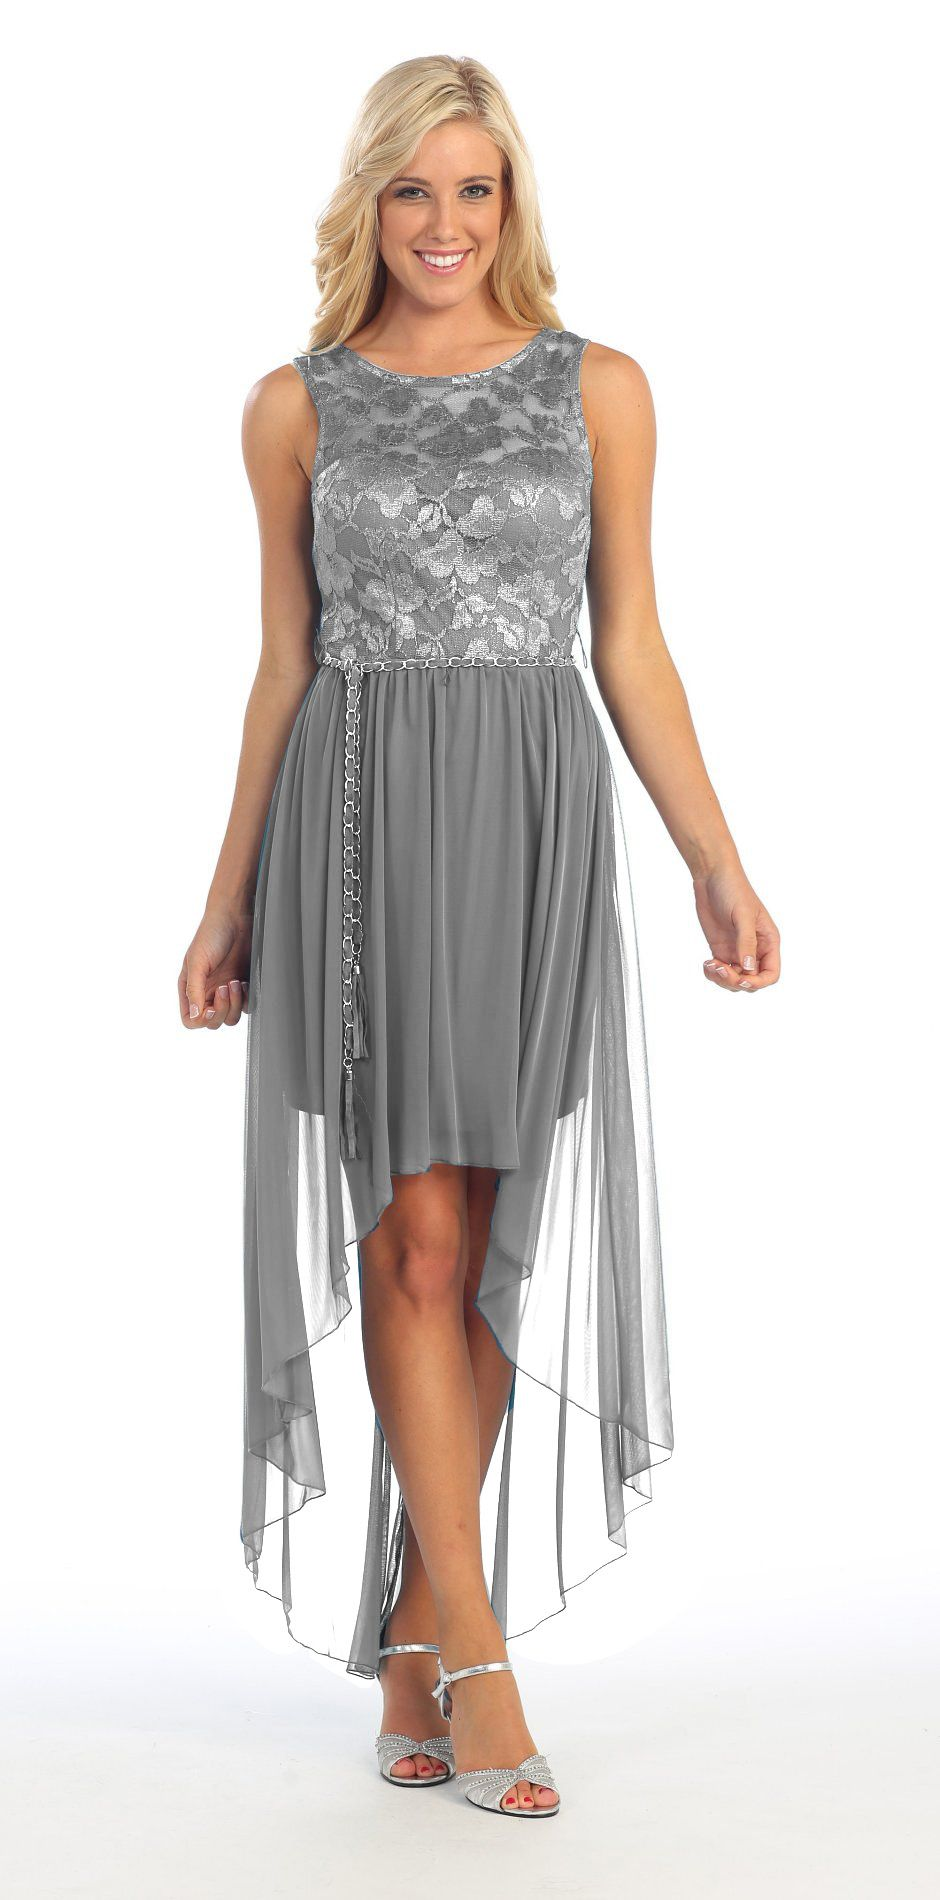 Bridesmaid high low silver dress lace top wide strap illusion neck